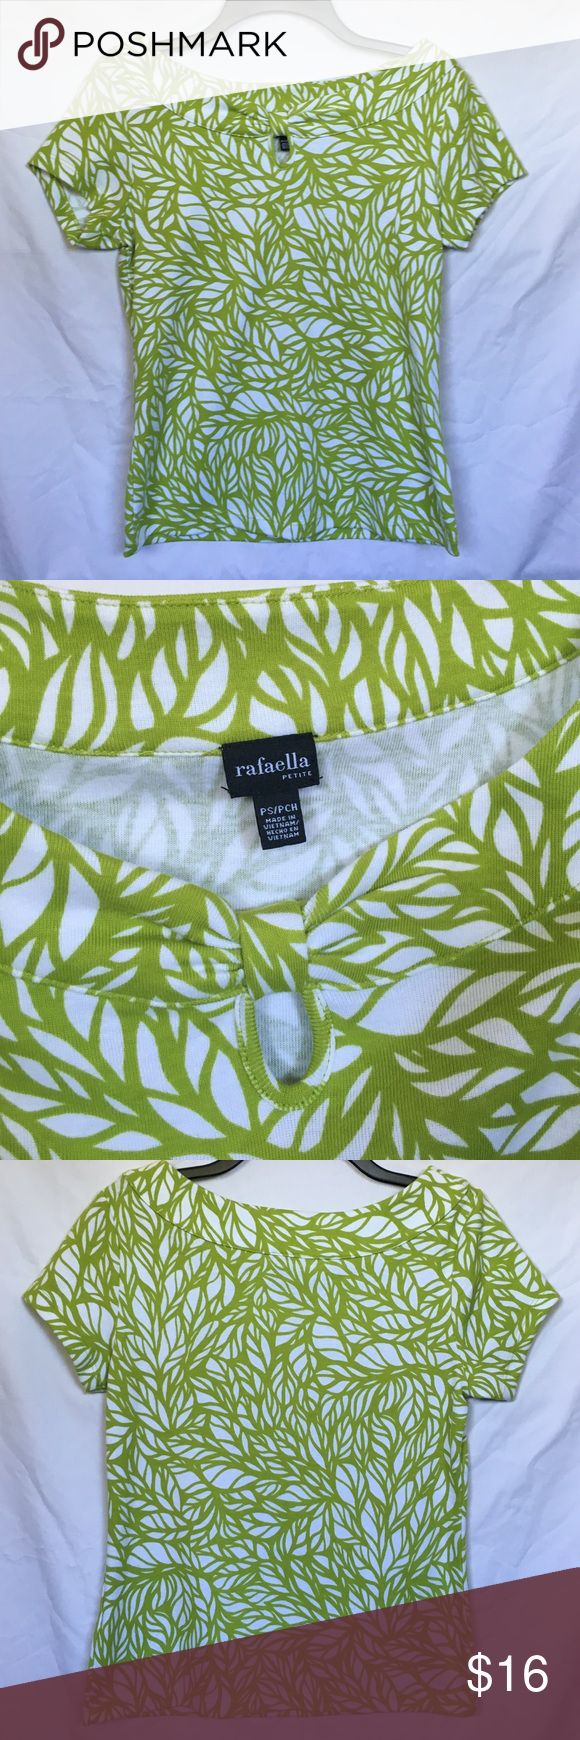 Rafaella petite short sleeve top Rafaella petite short sleeve top. Size PS/PCH. 100% cotton. The design looks like leaves to me. This is a very cute top for the summer. Super cute to wear on a vacation. Excellent condition! Rafaella Tops Tees - Short Sleeve